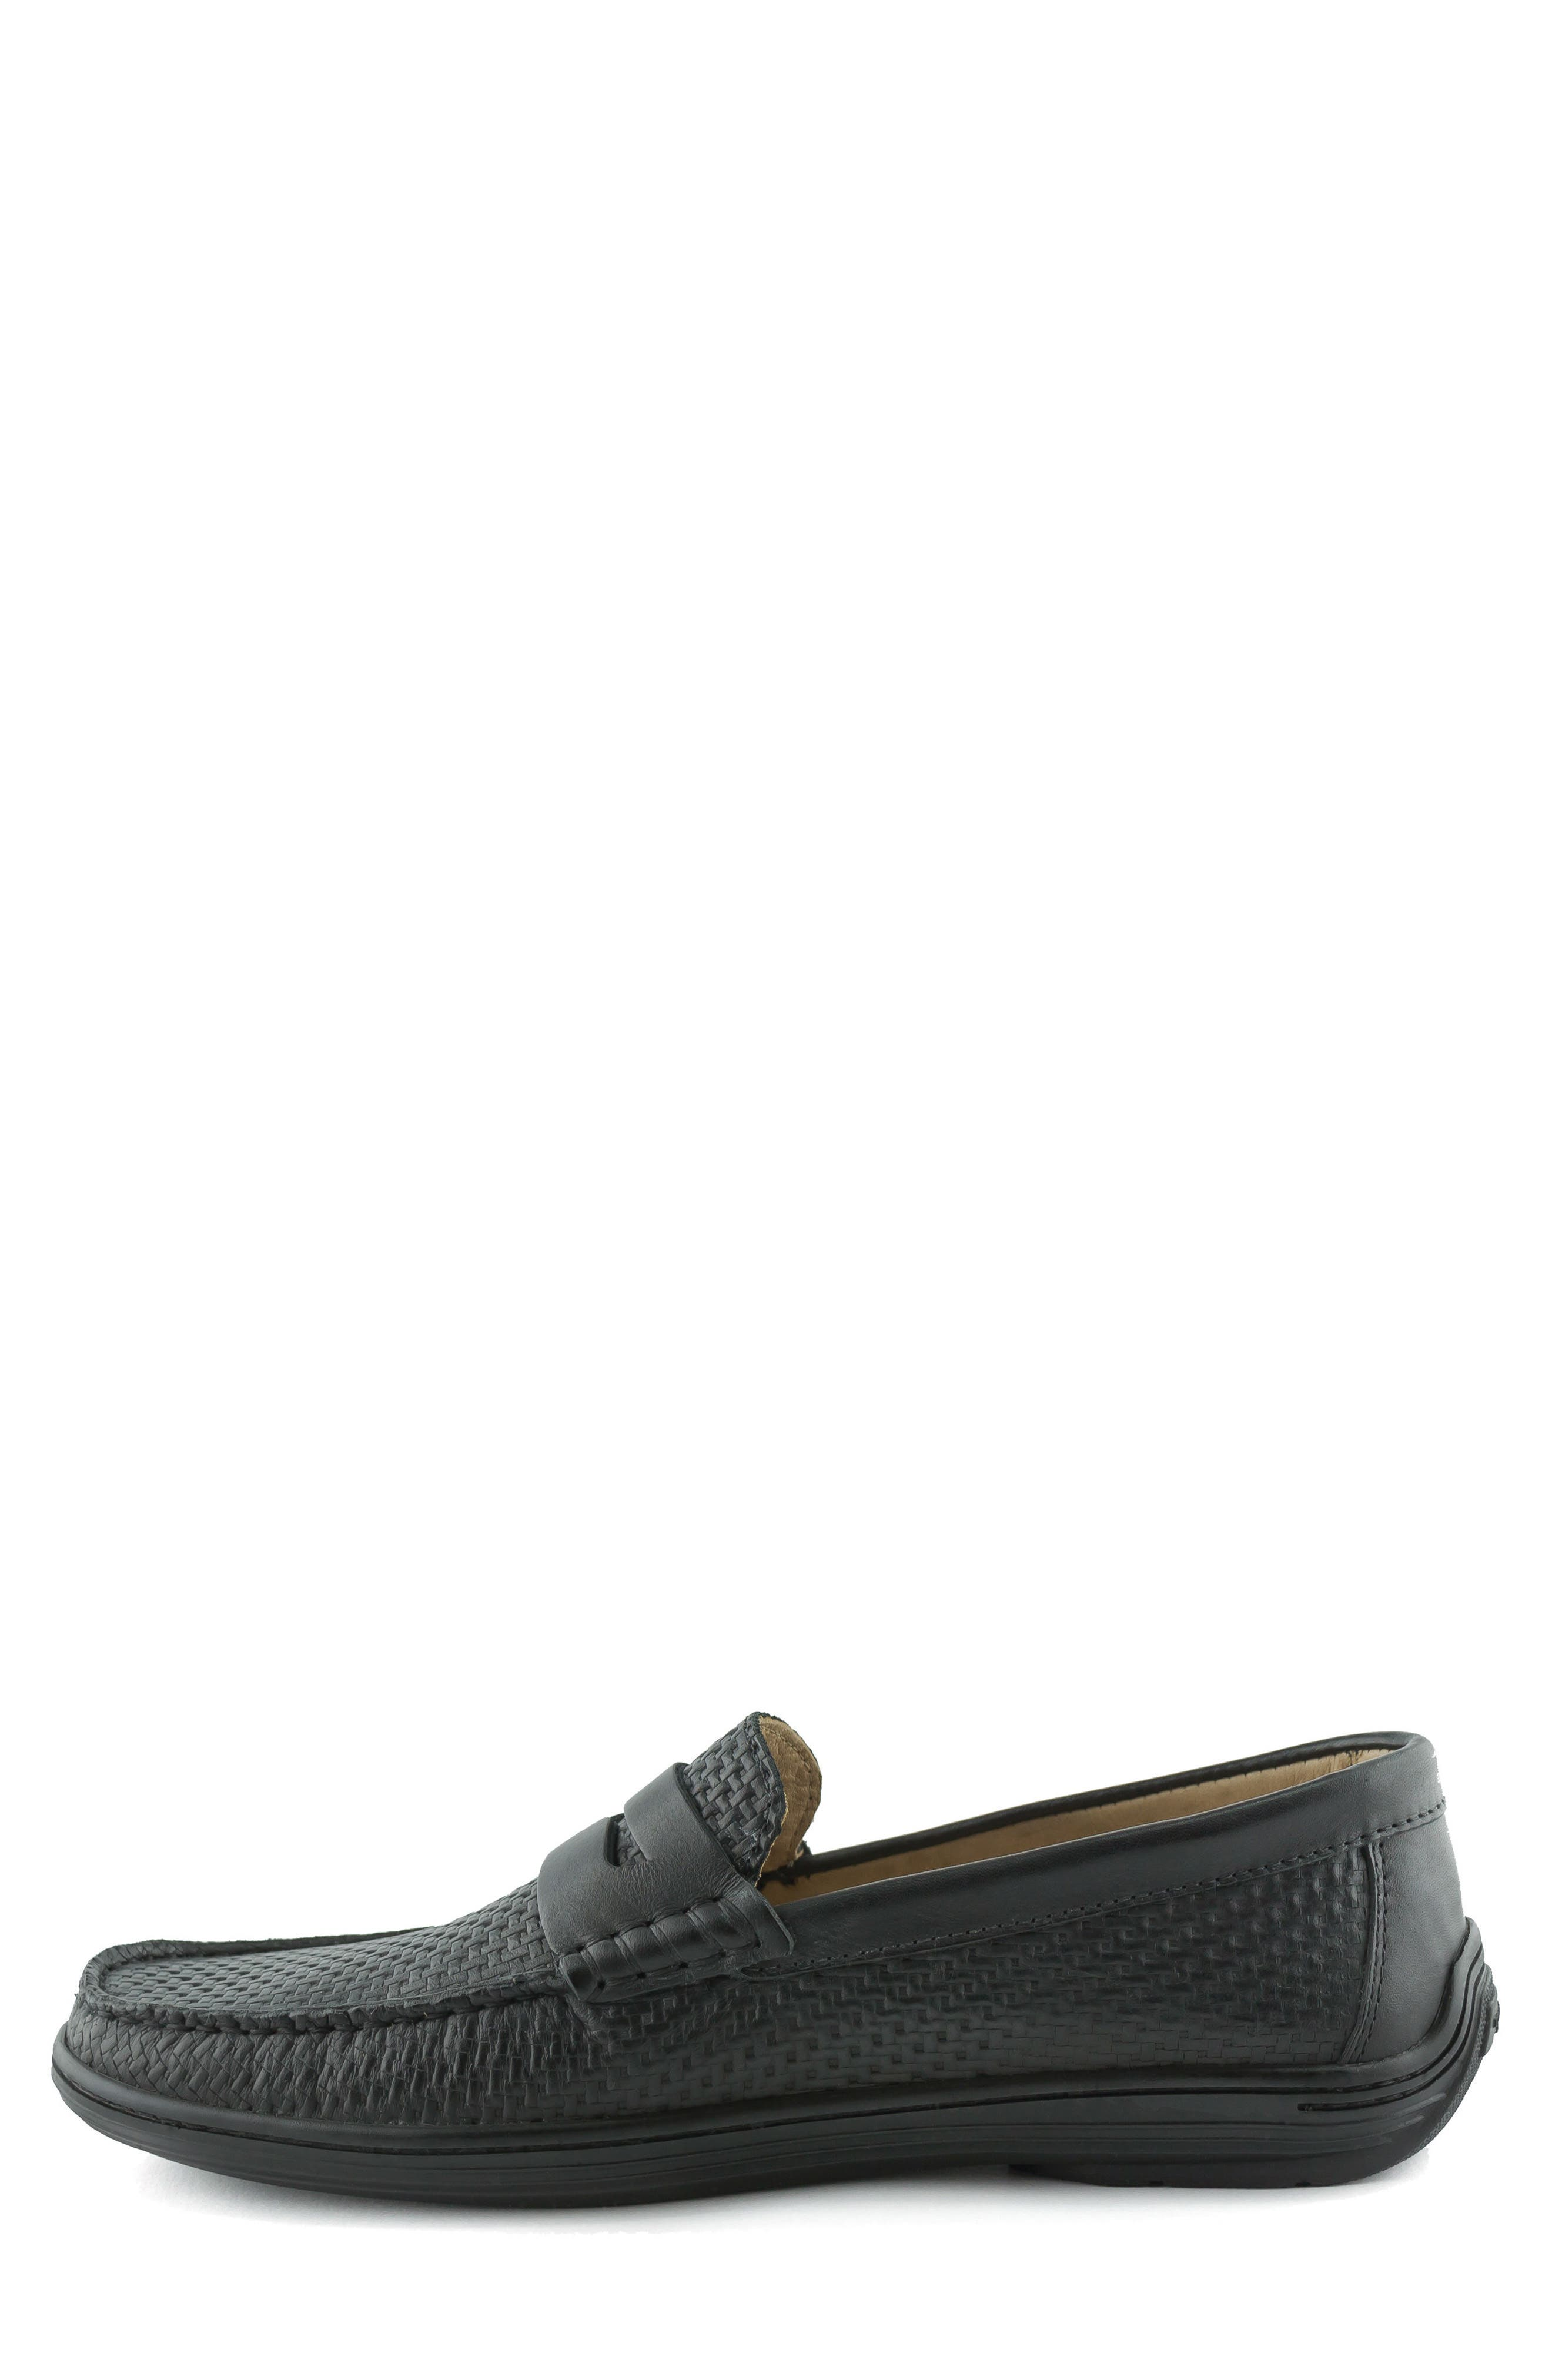 Atlantic Penny Loafer,                             Alternate thumbnail 16, color,